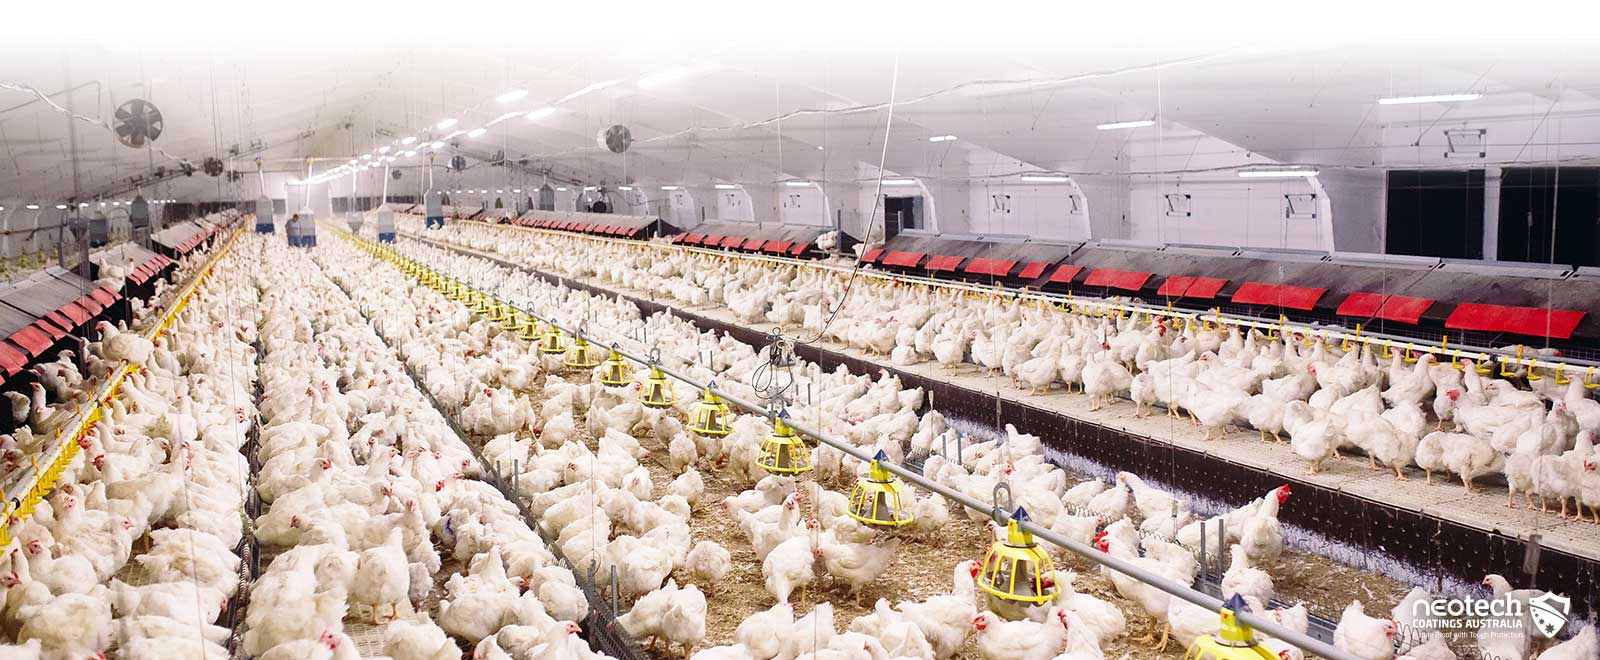 Poultry and Agriculture Heat Block Coatings NEOtech Coatings